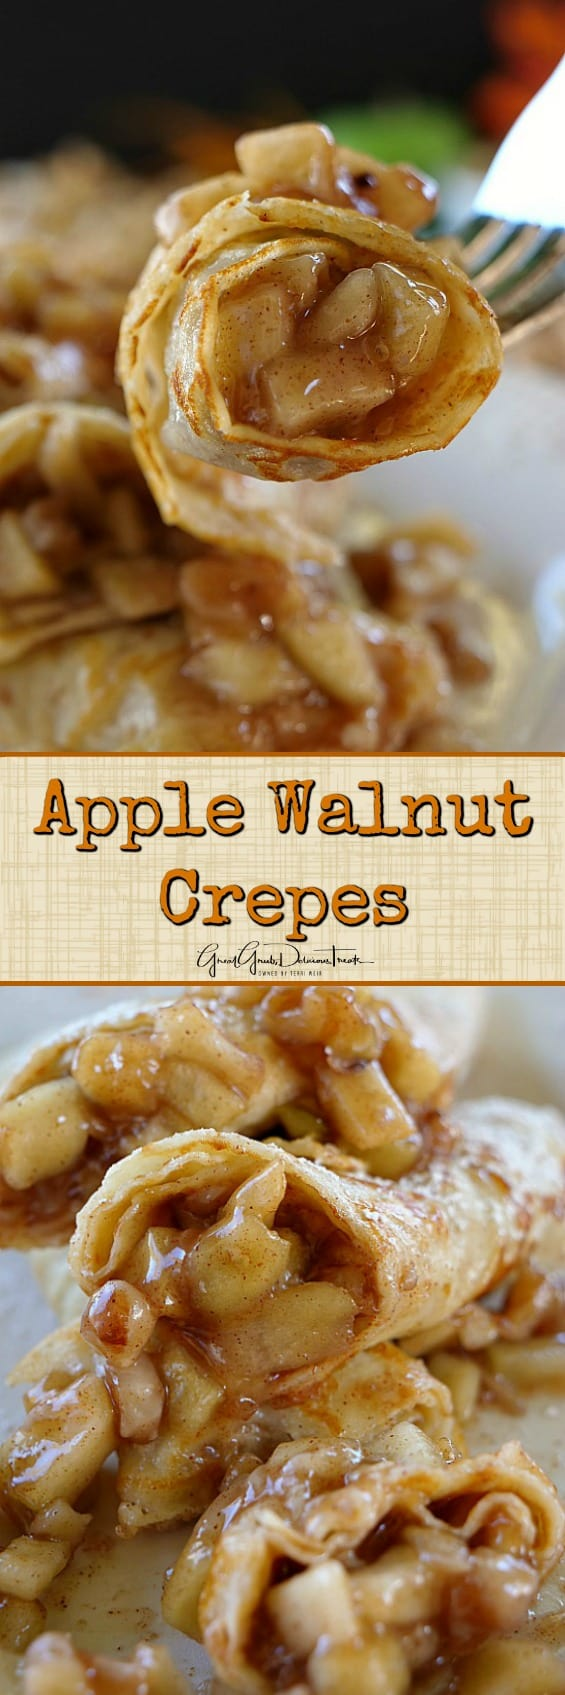 Apple Walnut Crepes